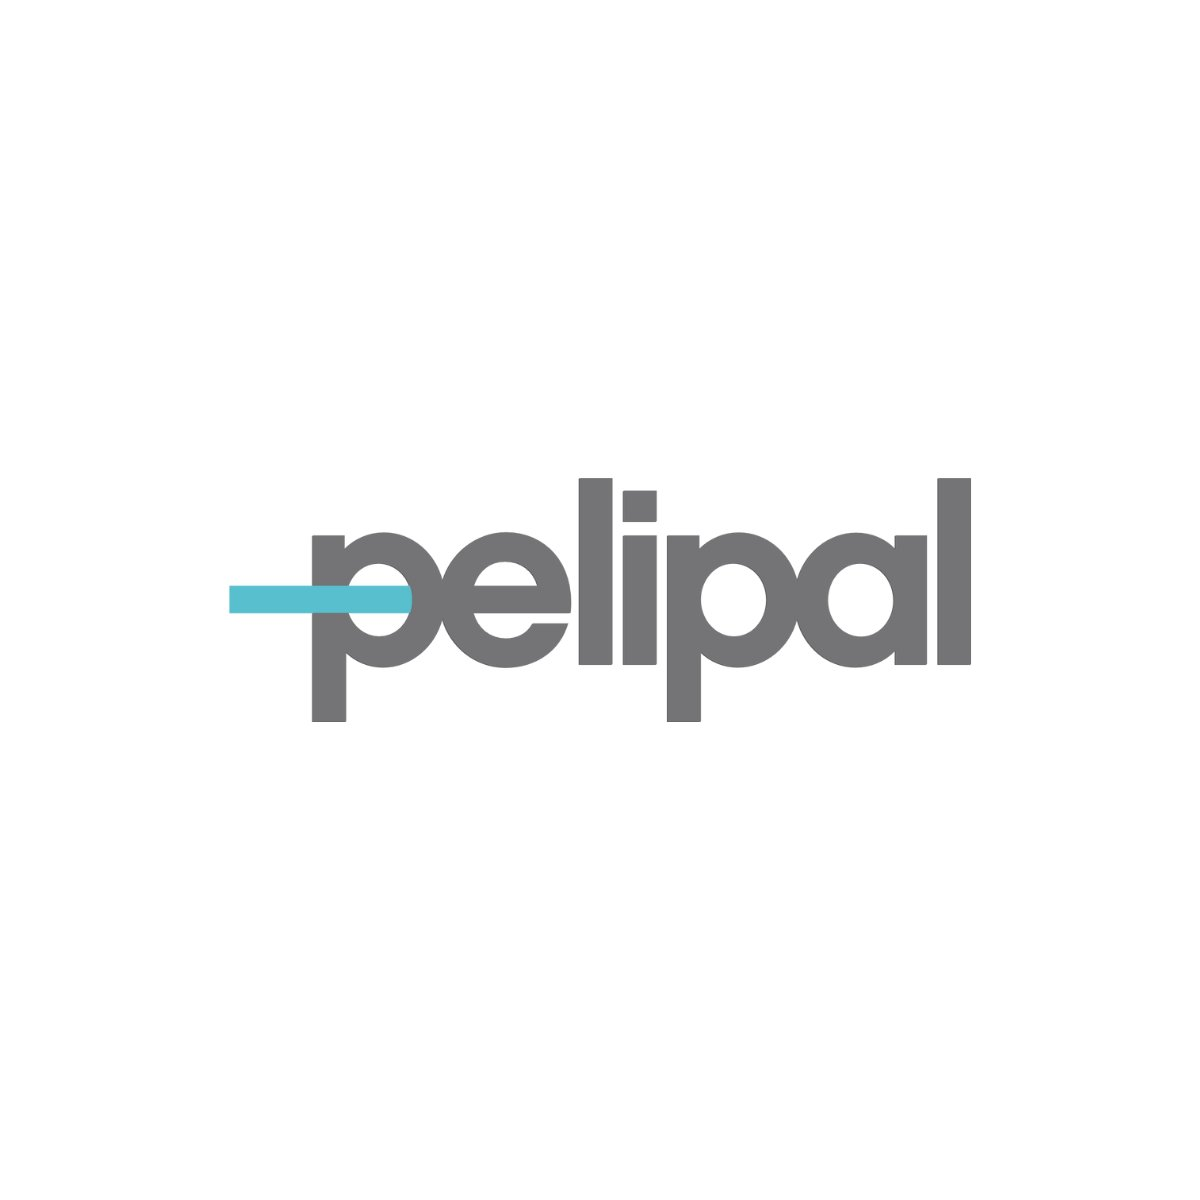 The Pelipal Solitaire catalogues have been updated on Virtual Worlds.  This update adds the new Solitaire 9005 and Solitaire 7065 product ranges, as well as a wide range of other cabinets, basins, handles and finish options #CAD Catalogue #KBB #VW4D